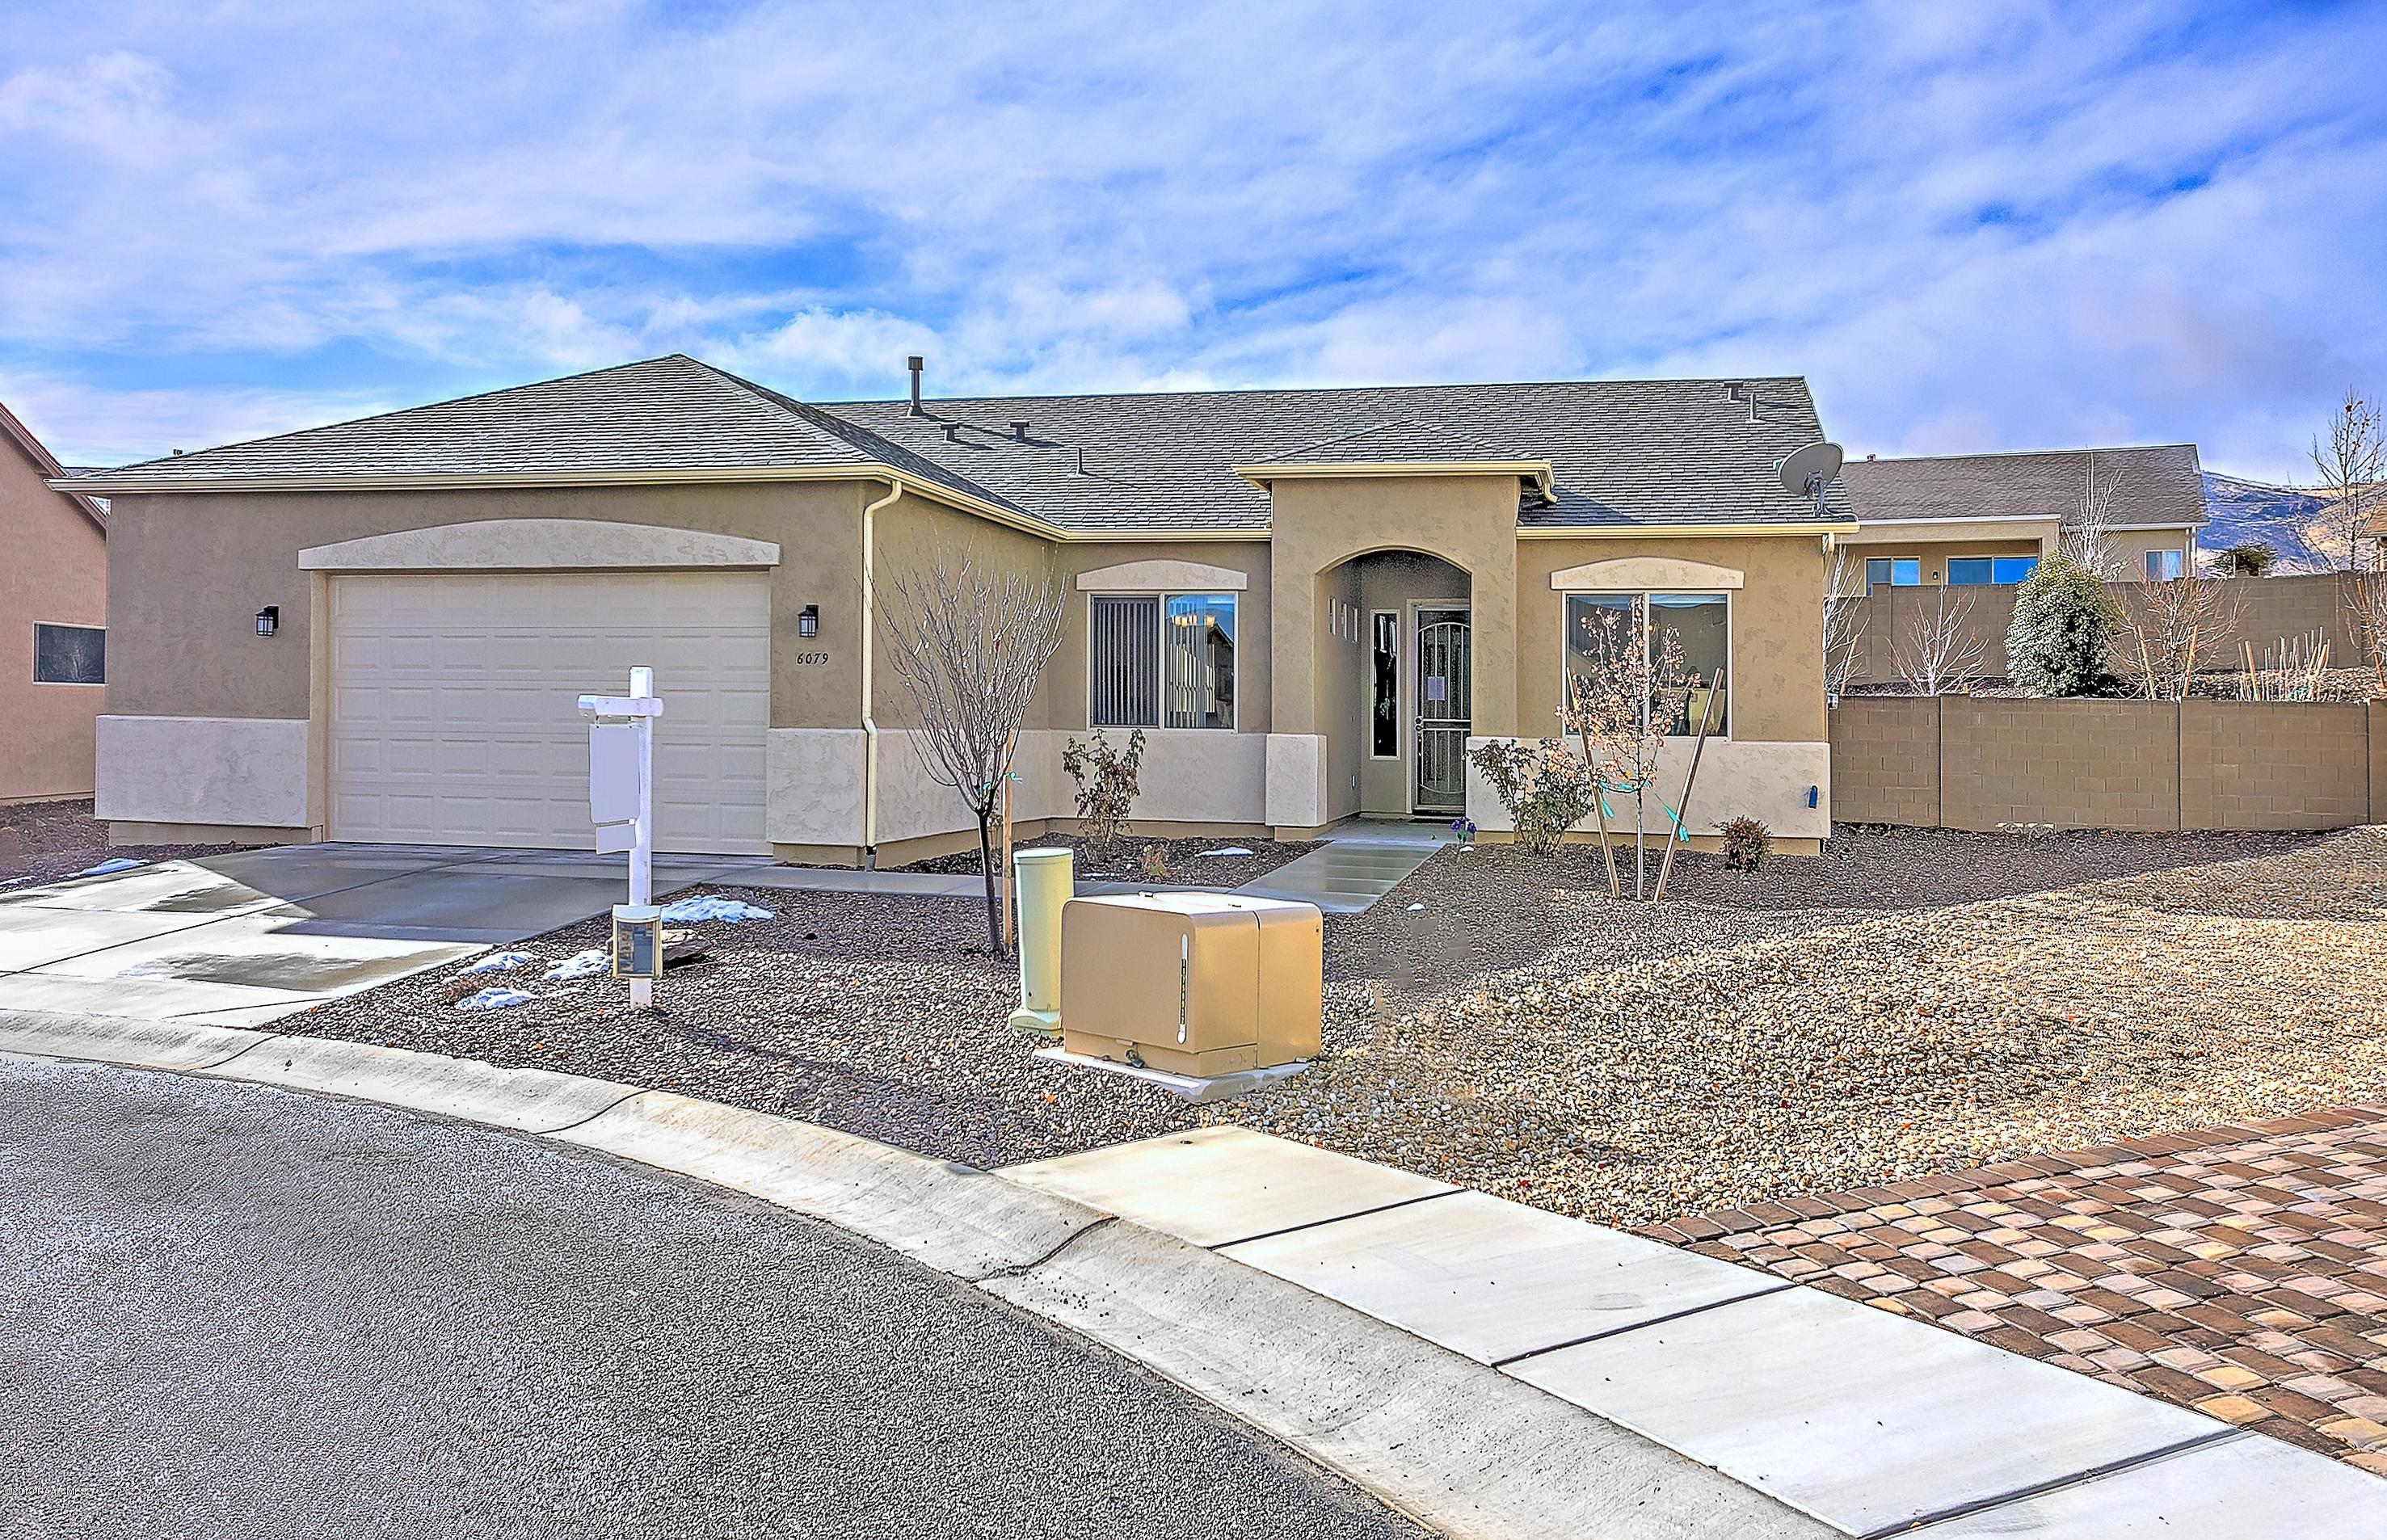 Photo of 6079 Linwood, Prescott Valley, AZ 86314